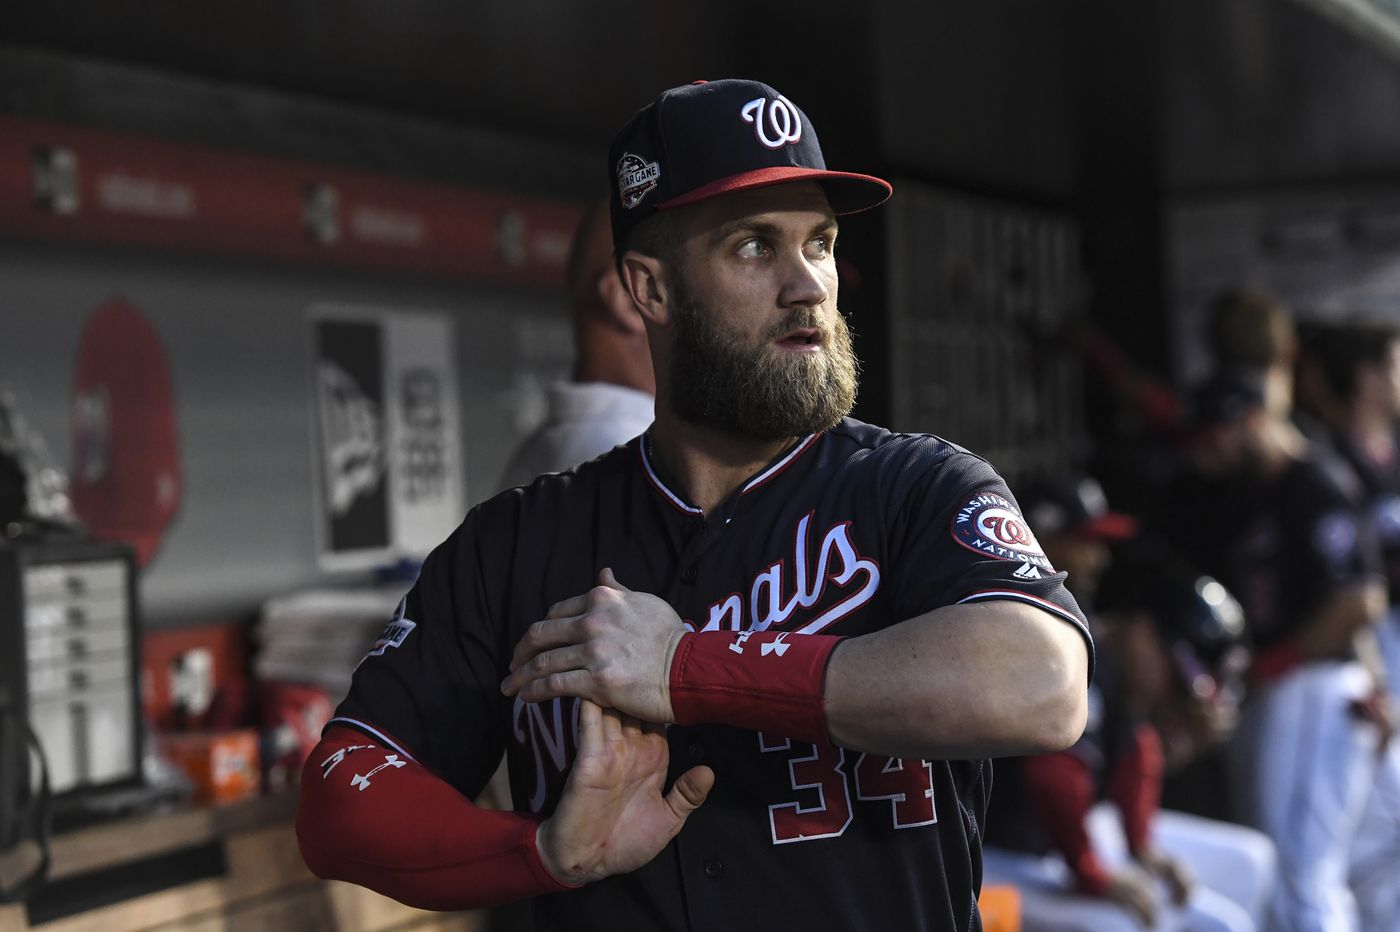 Bryce Harper to sign with Phillies